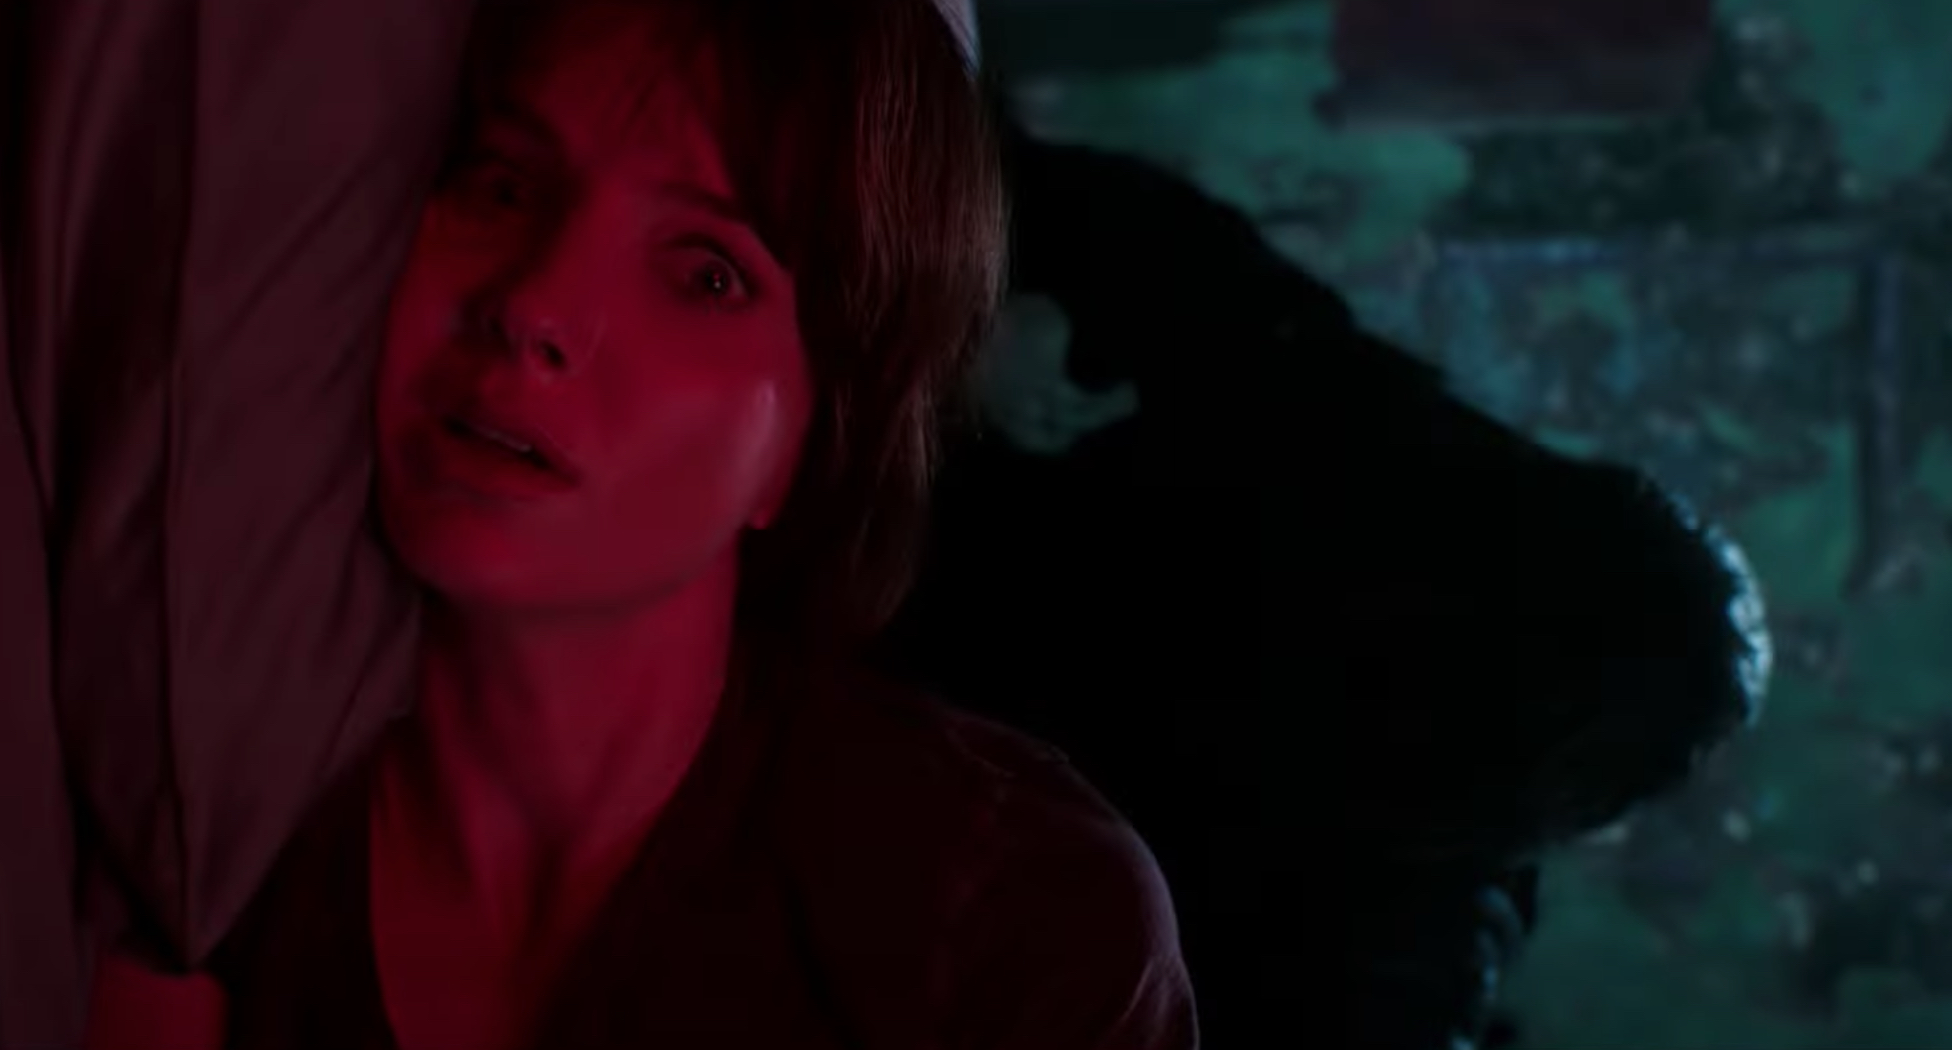 Warner Bros. have released the official trailer for the upcoming horror thriller Malignant.